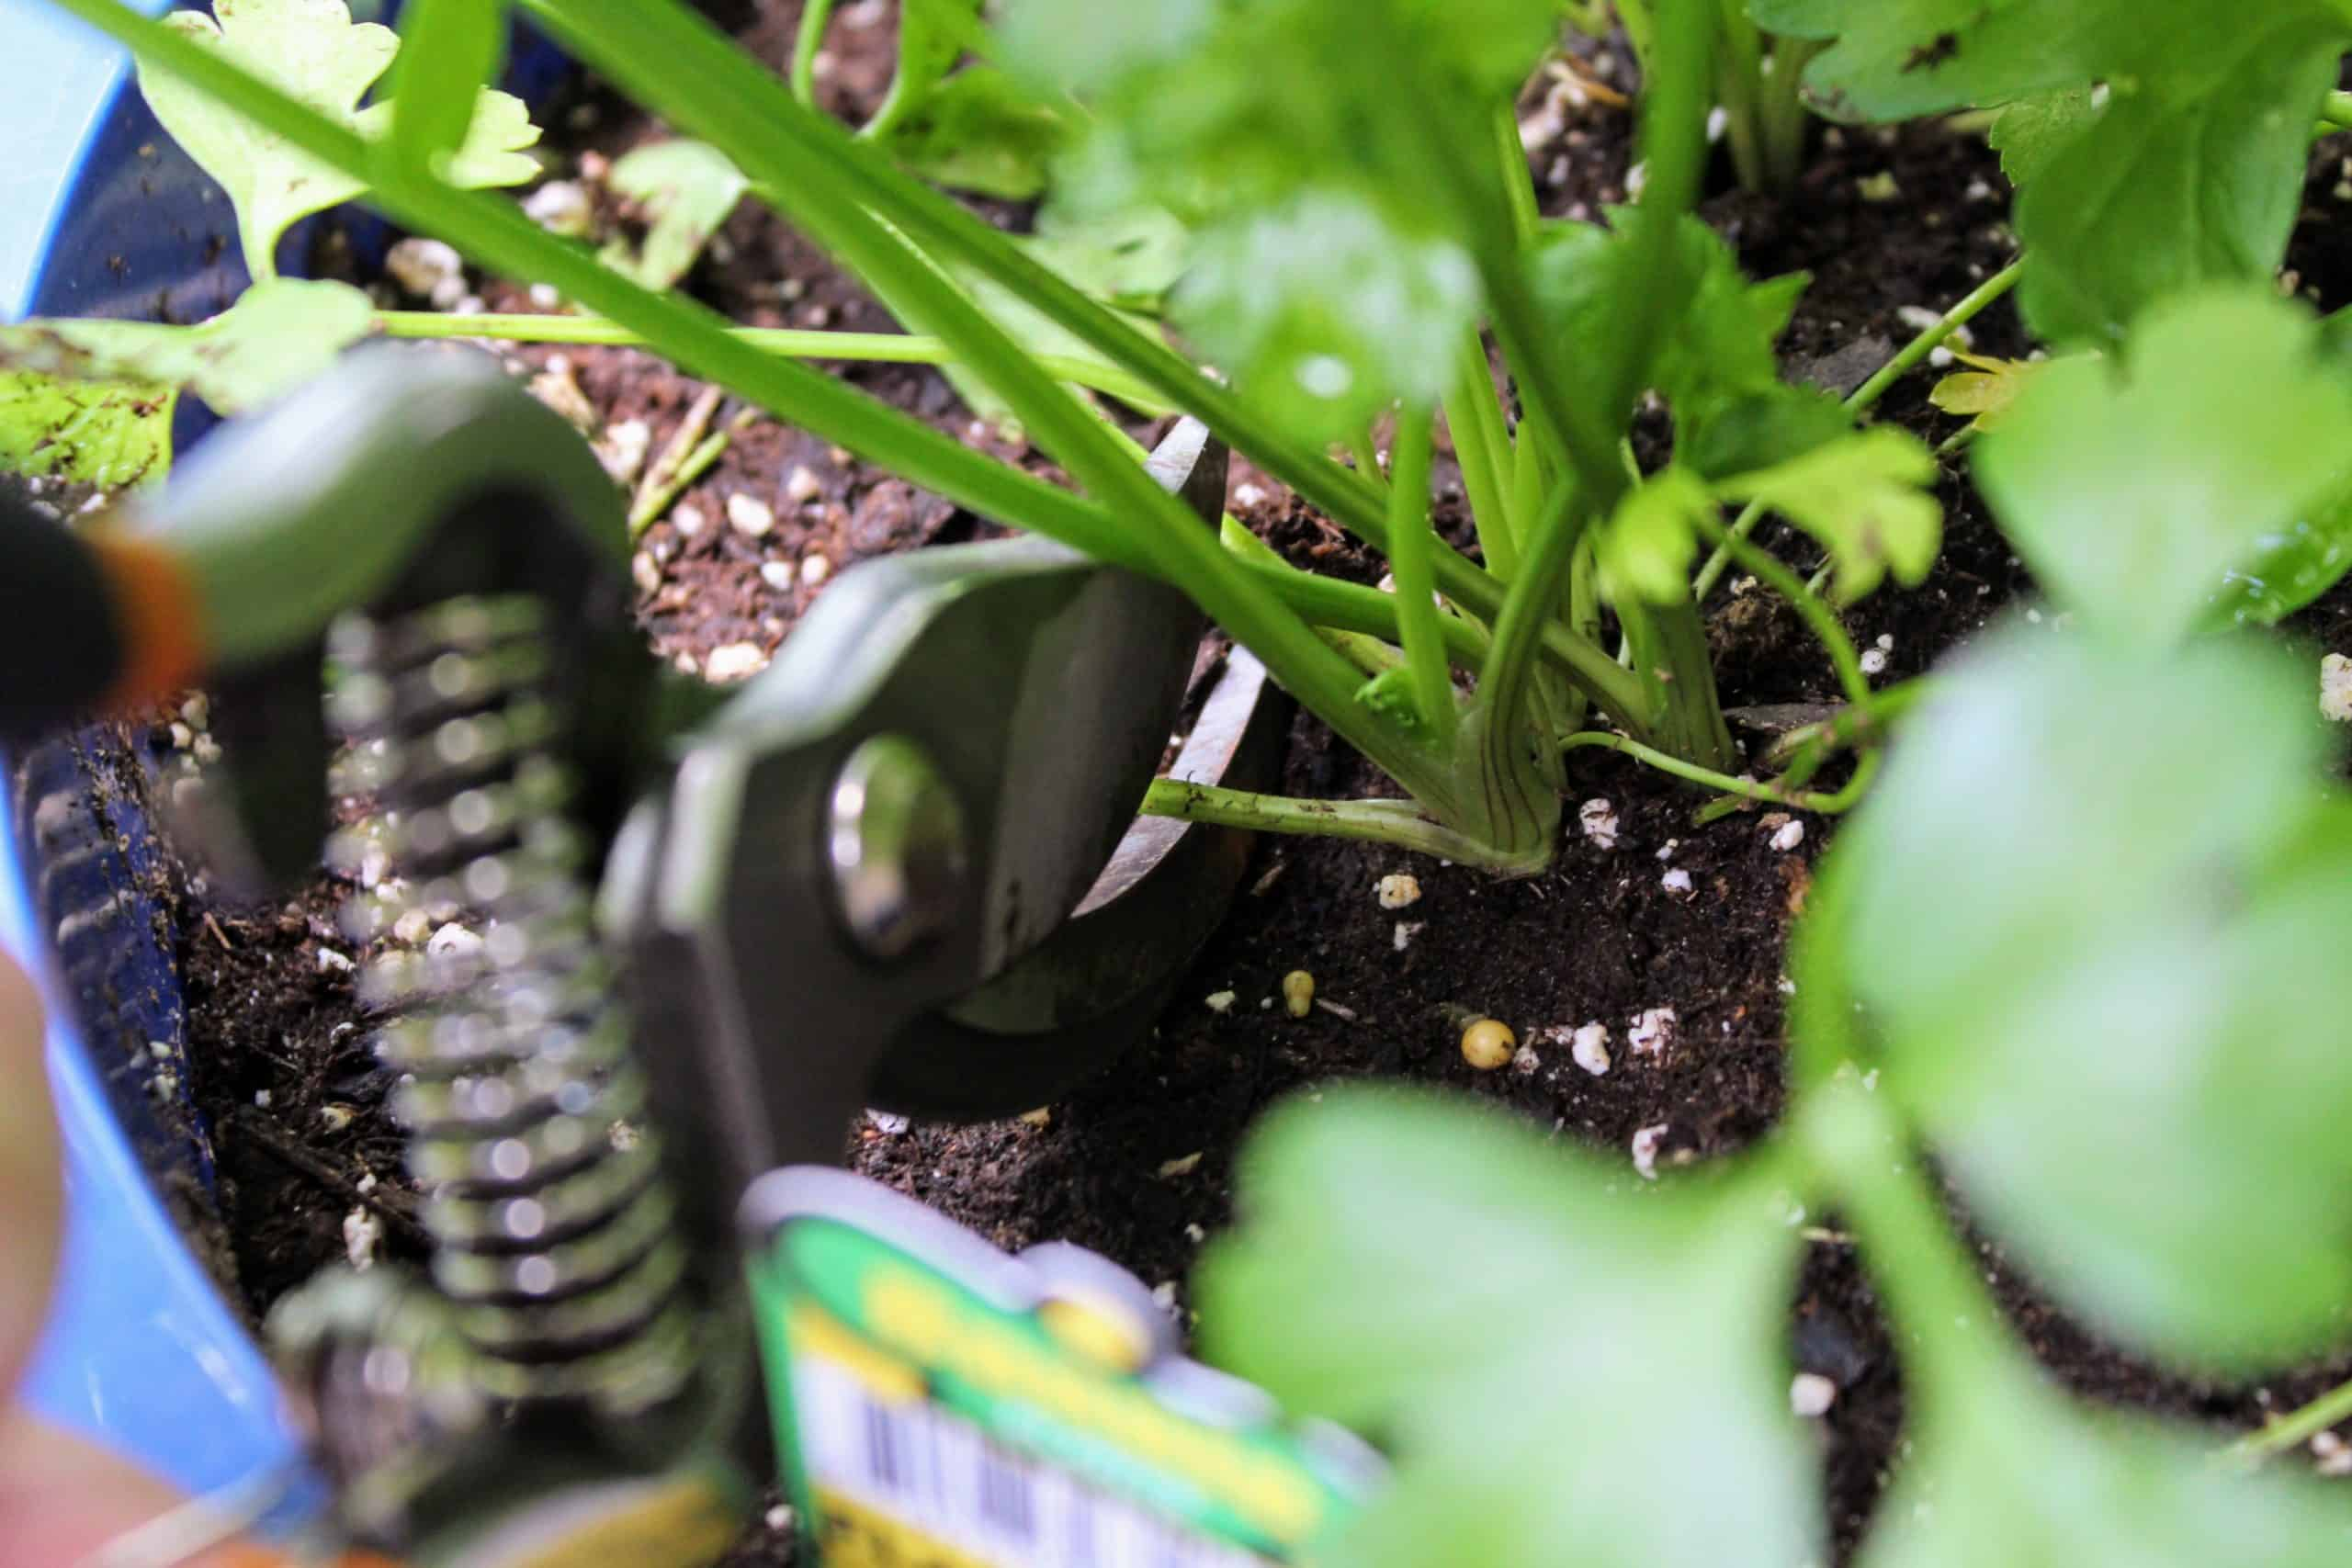 A close-up of cutting the outer part of a parsley plant at the base.